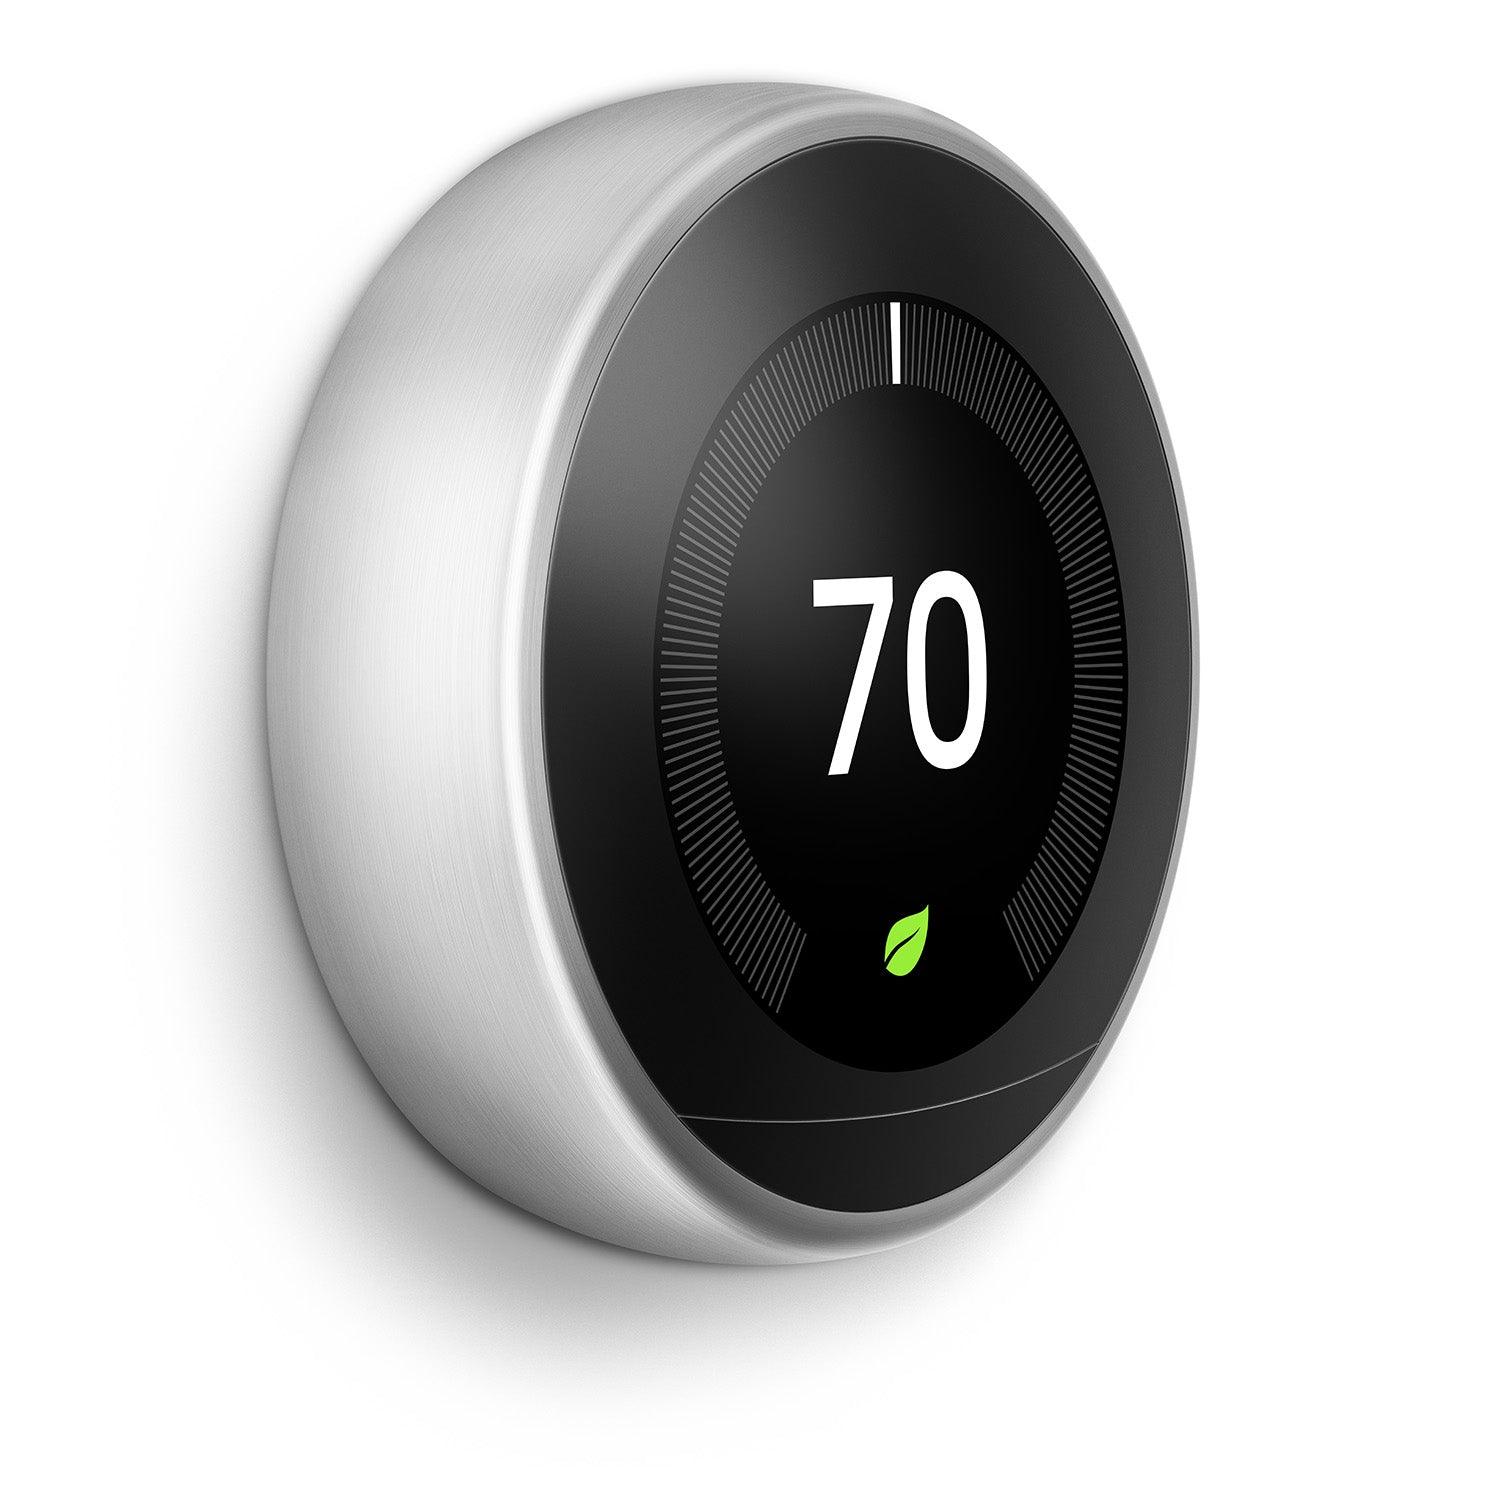 3rd gen Nest Learning Thermostat Heating